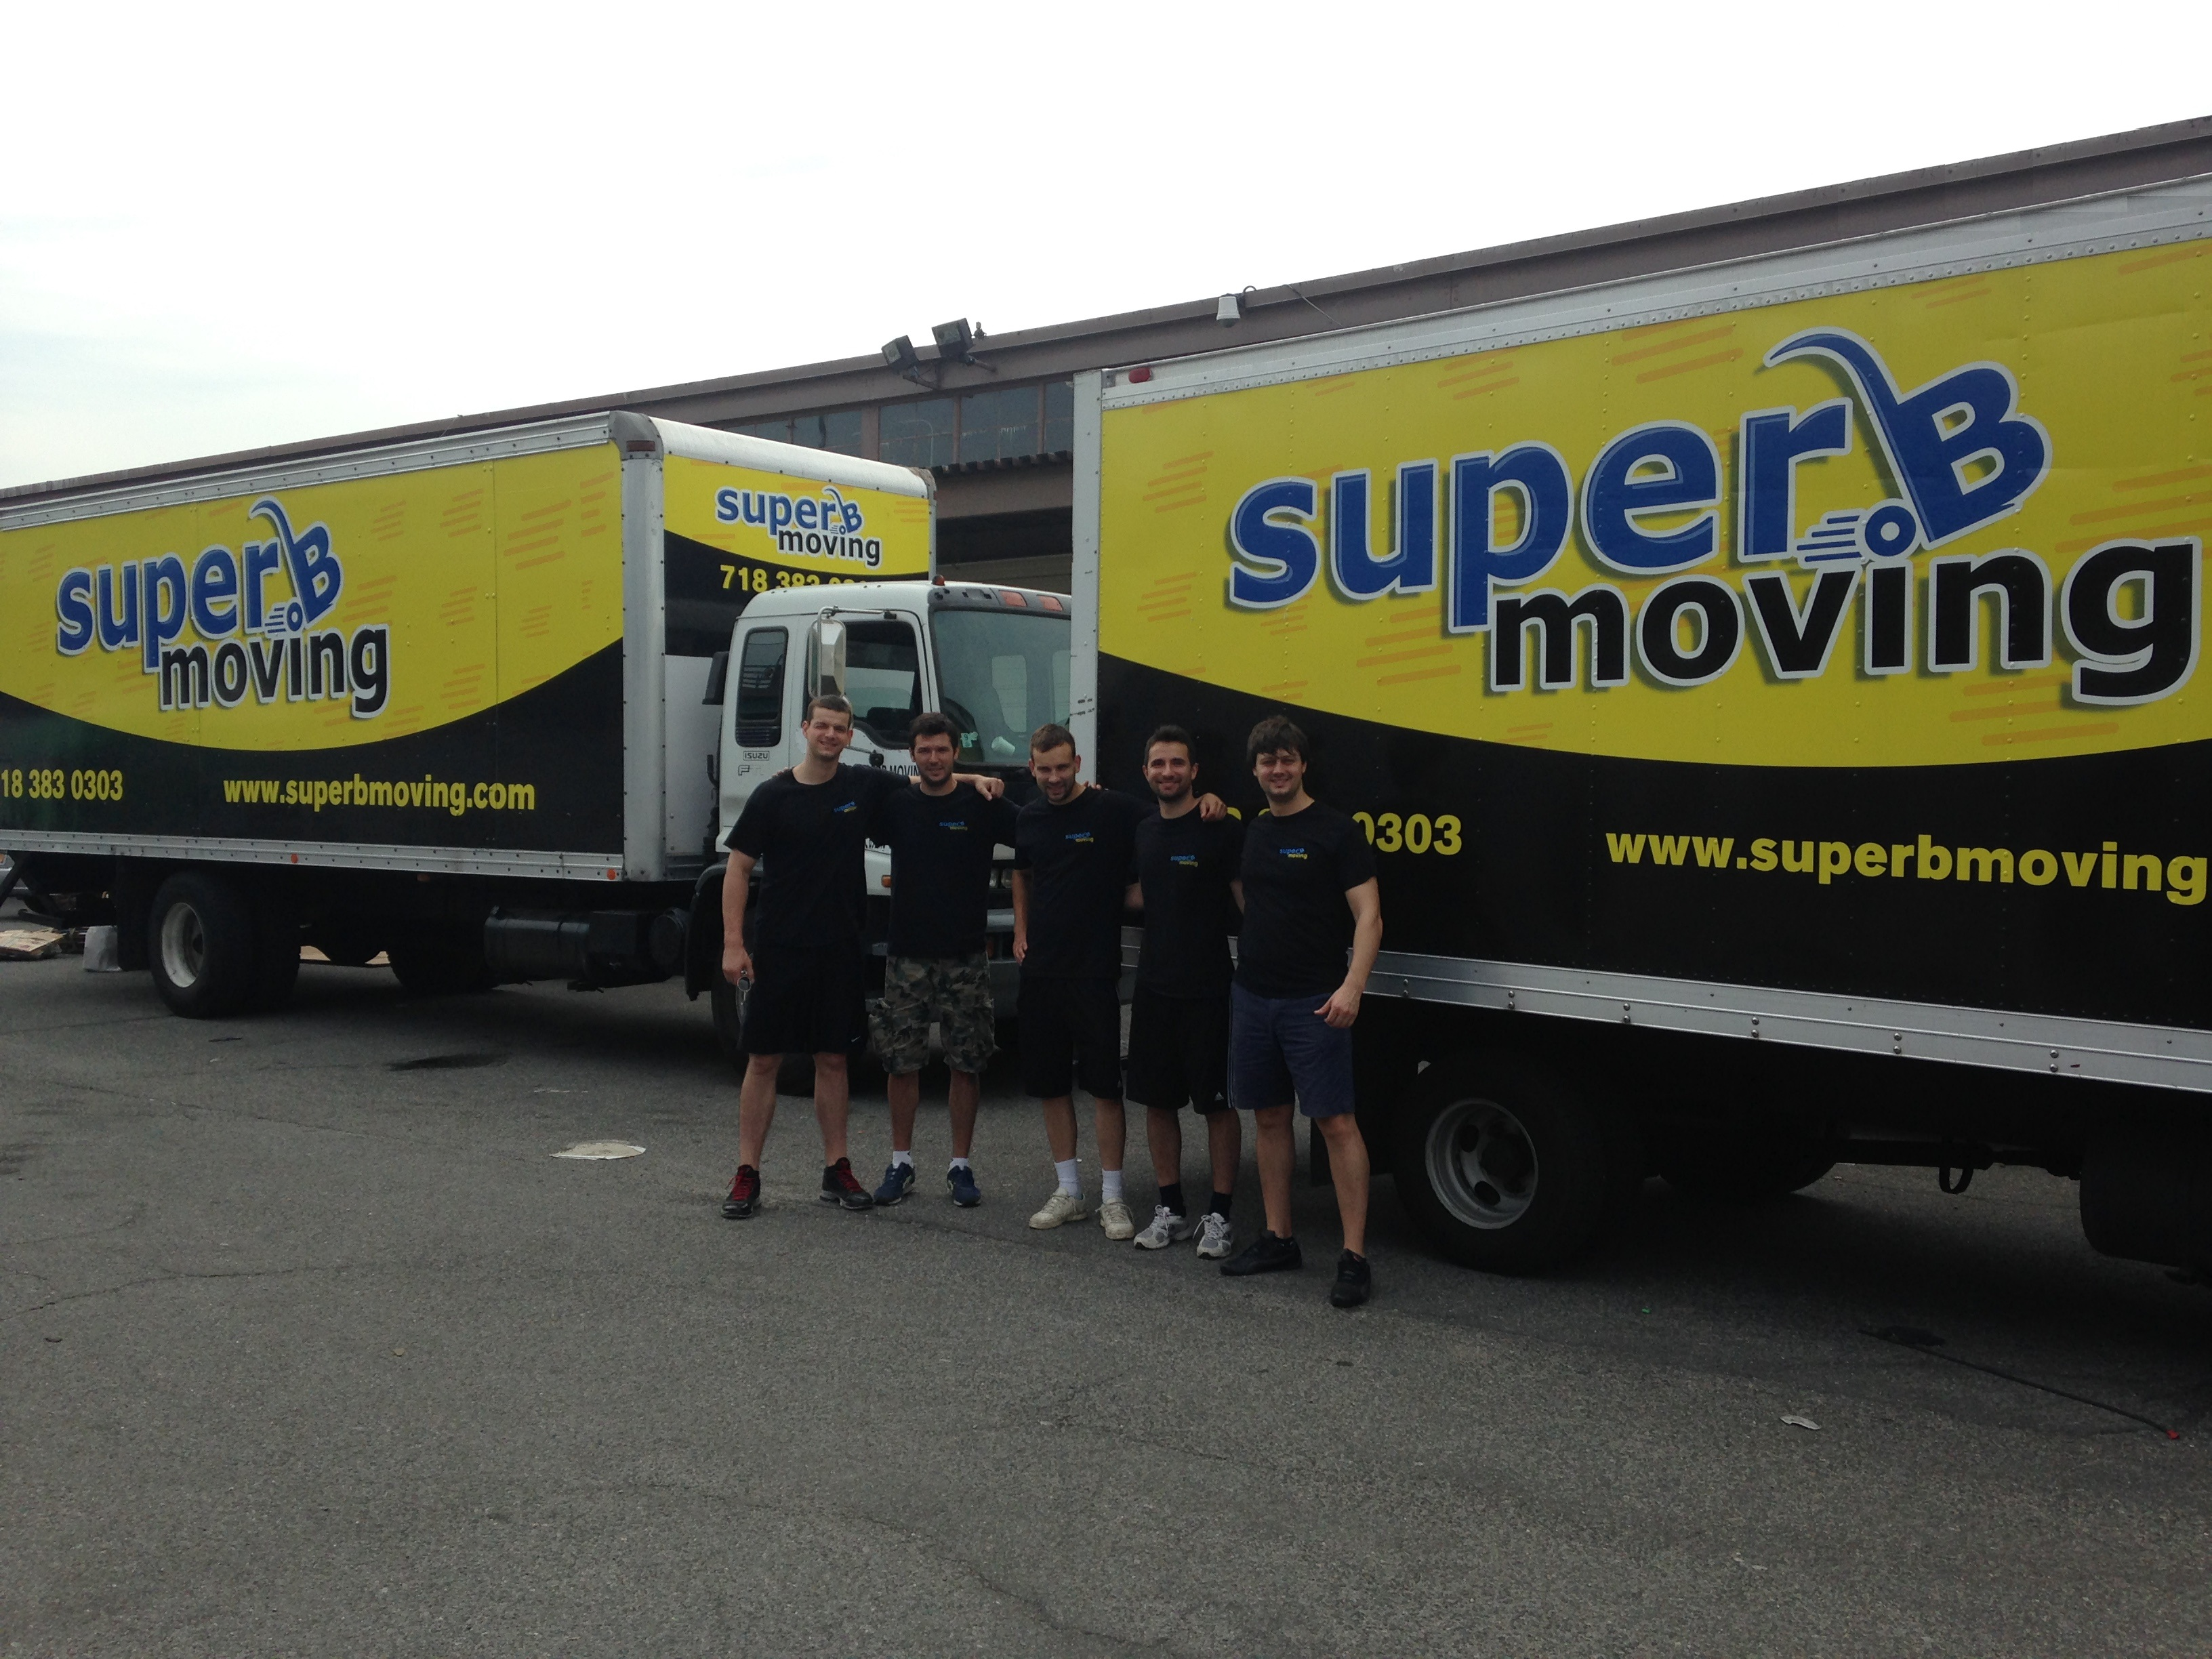 SuperB Moving trucks and crew are ready to service Citymove